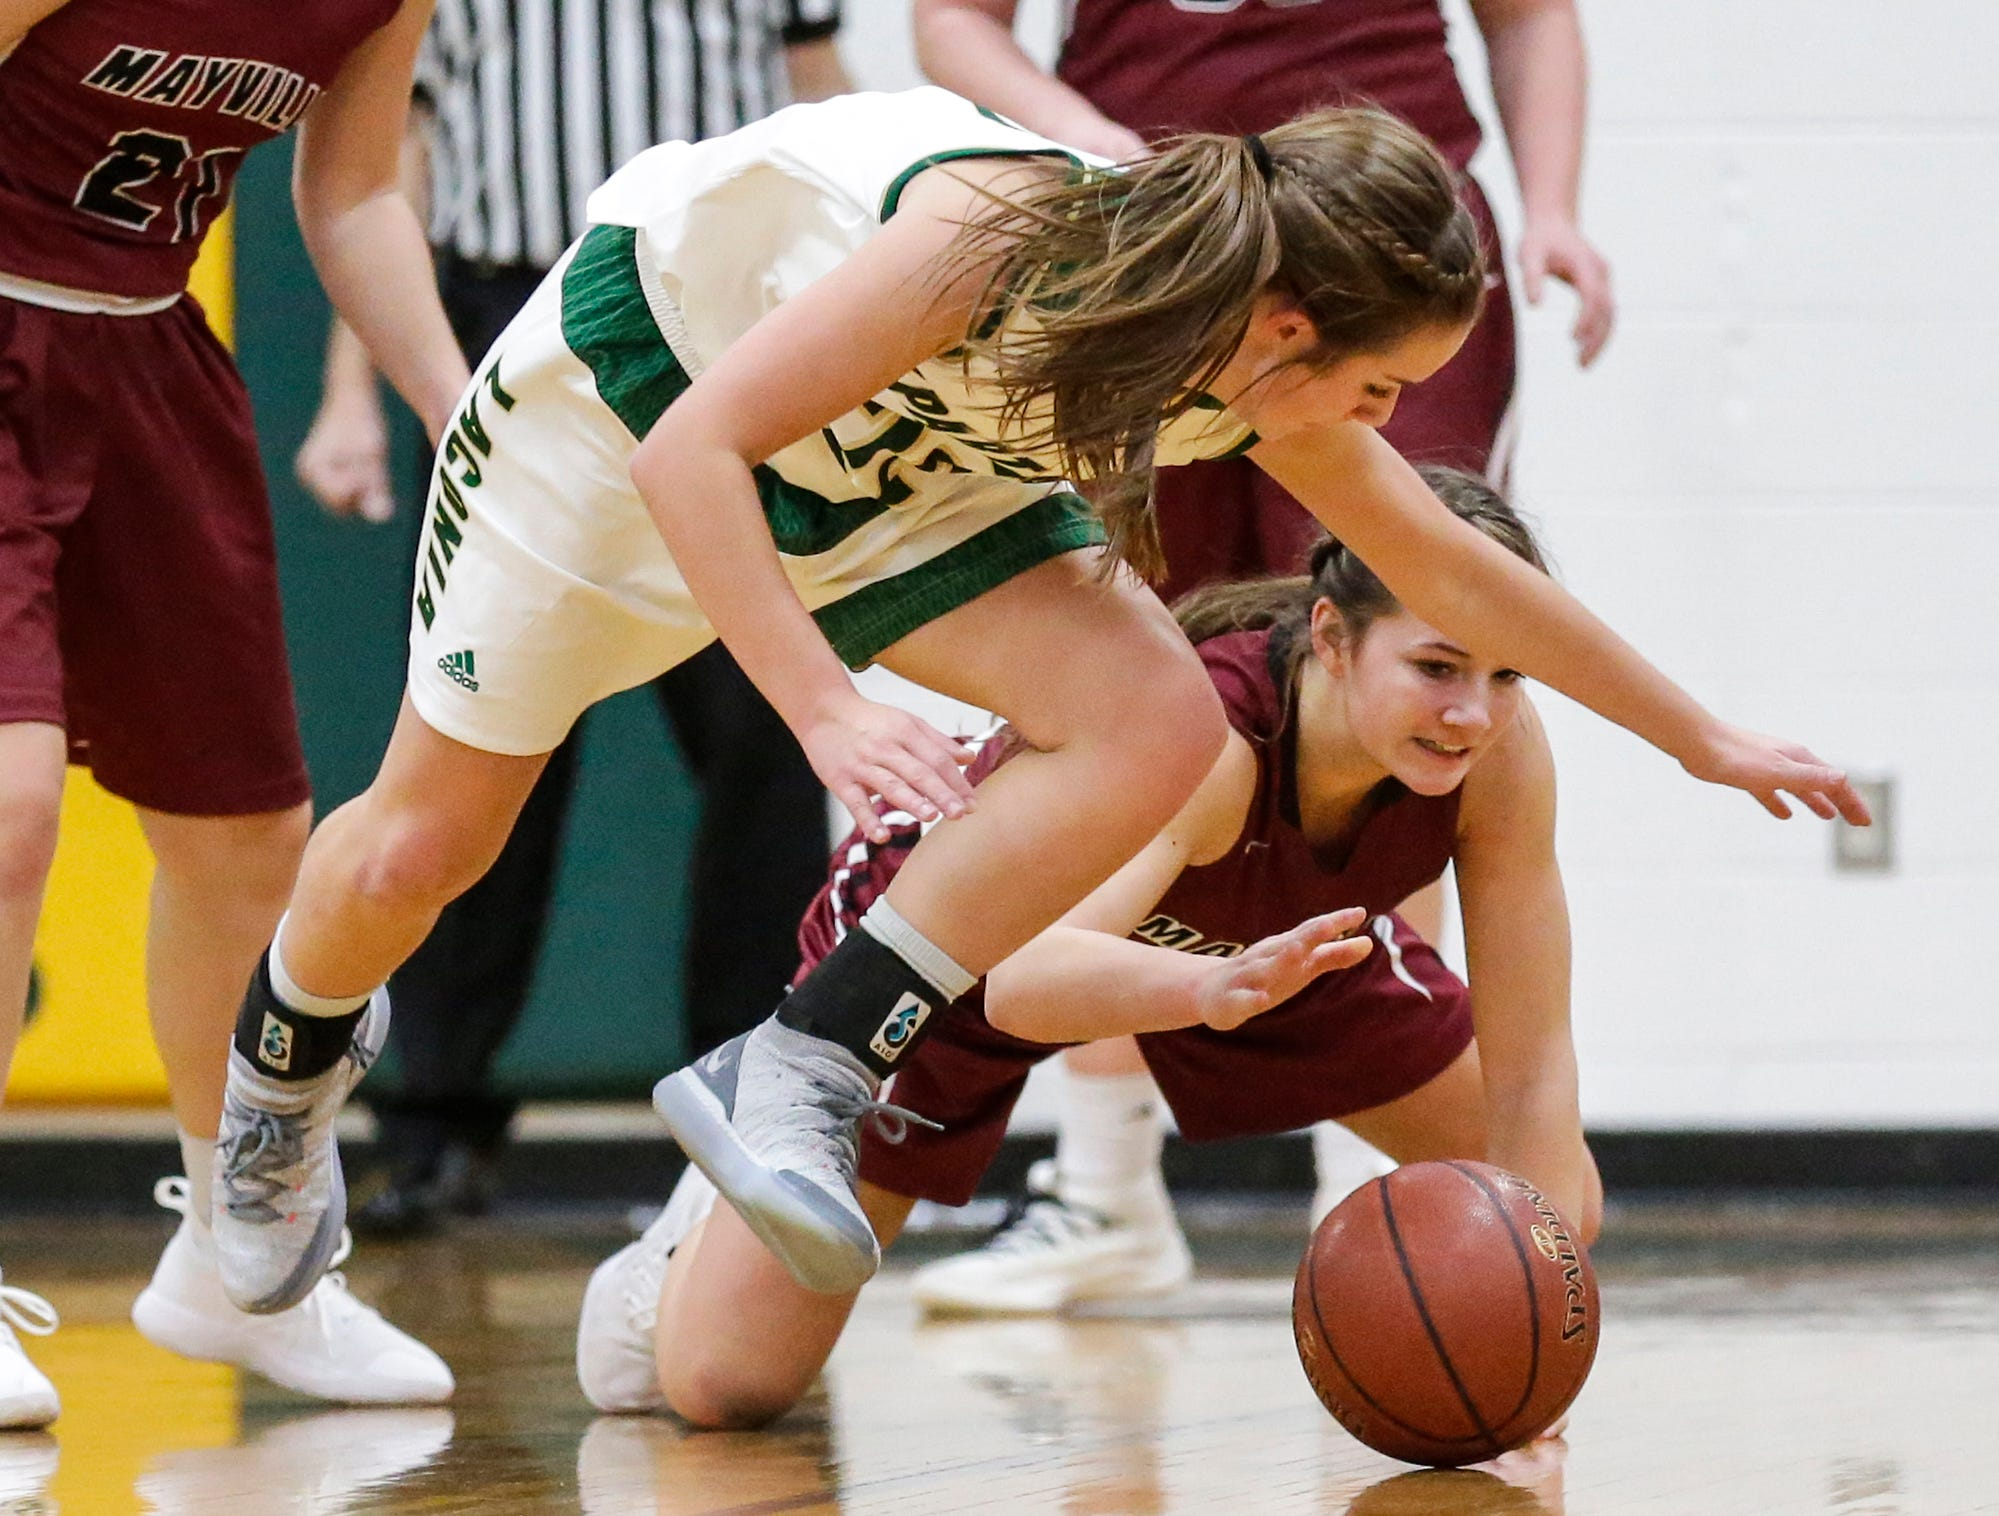 Laconia High School girls basketball's Haley Rens and Mayville High School's Whitney Liegl go after a loose ball during their game Friday, November 30, 2018 in Rosendale. Doug Raflik/USA TODAY NETWORK-Wisconsin